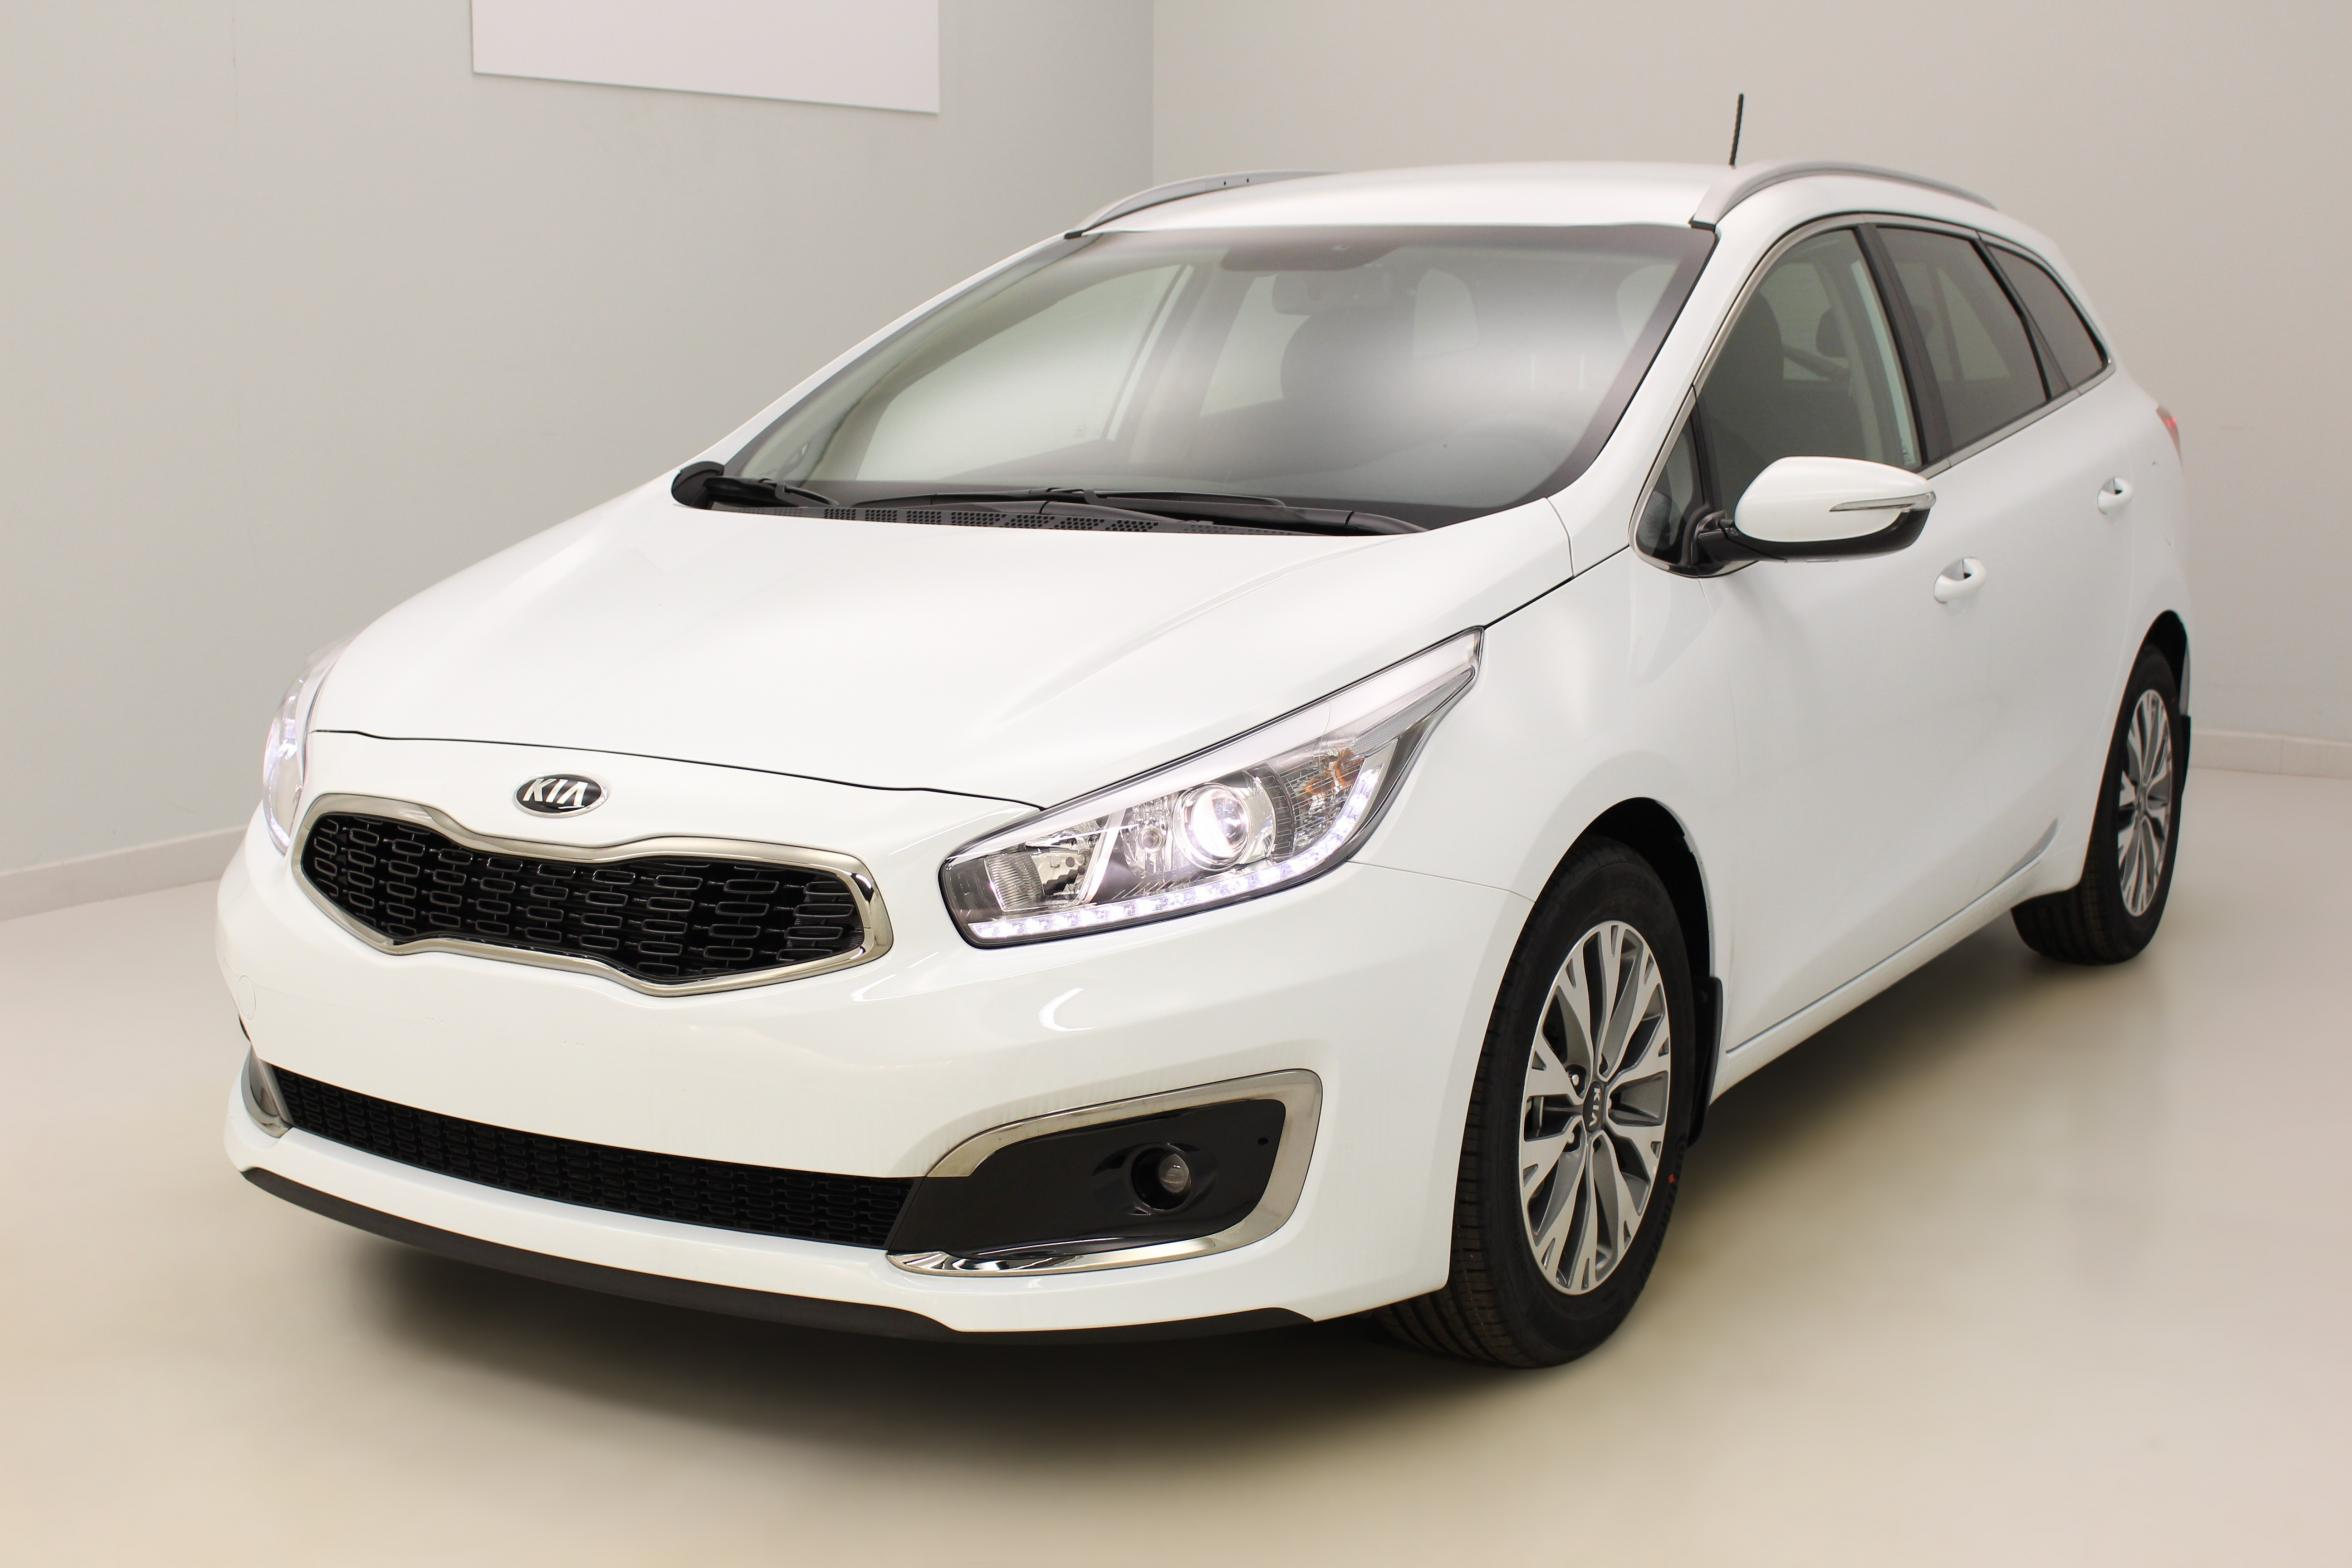 KIA Ceed SW 1.0 T-GDI 120 ch Active Blanc avec options